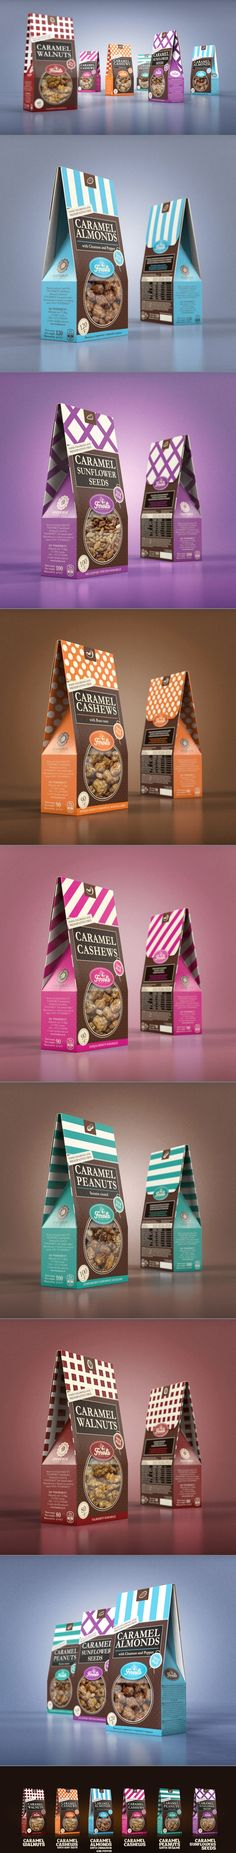 Sugar nuts :  Packaging design by Studio43